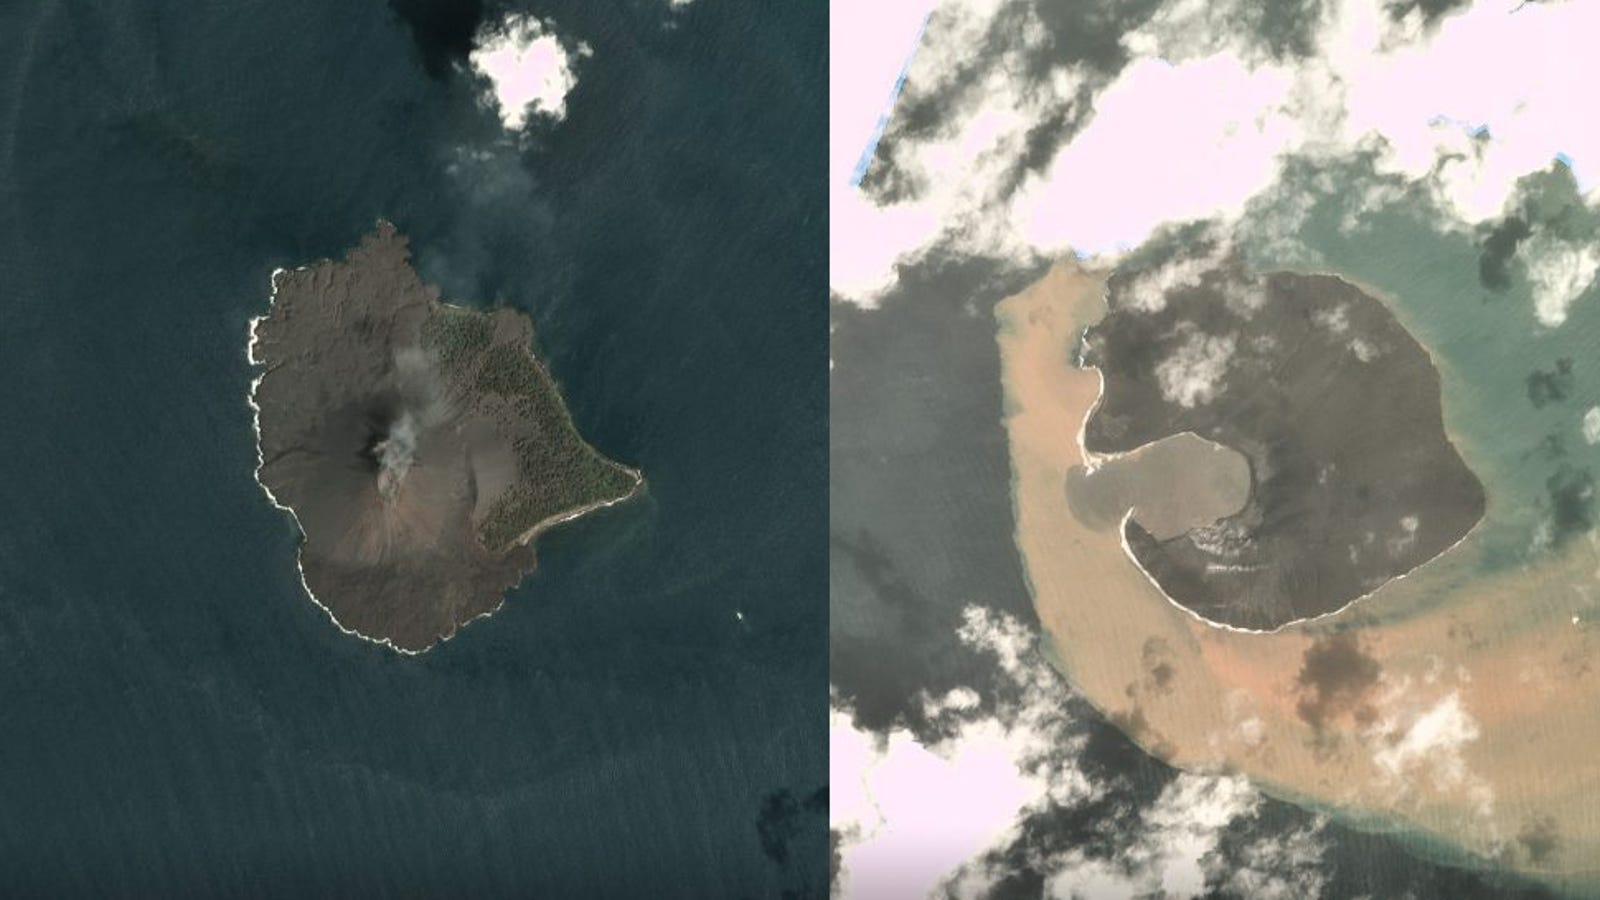 QnA VBage Satellite Images Show Shattered Remains of Indonesia's Tsunami-Causing Volcano